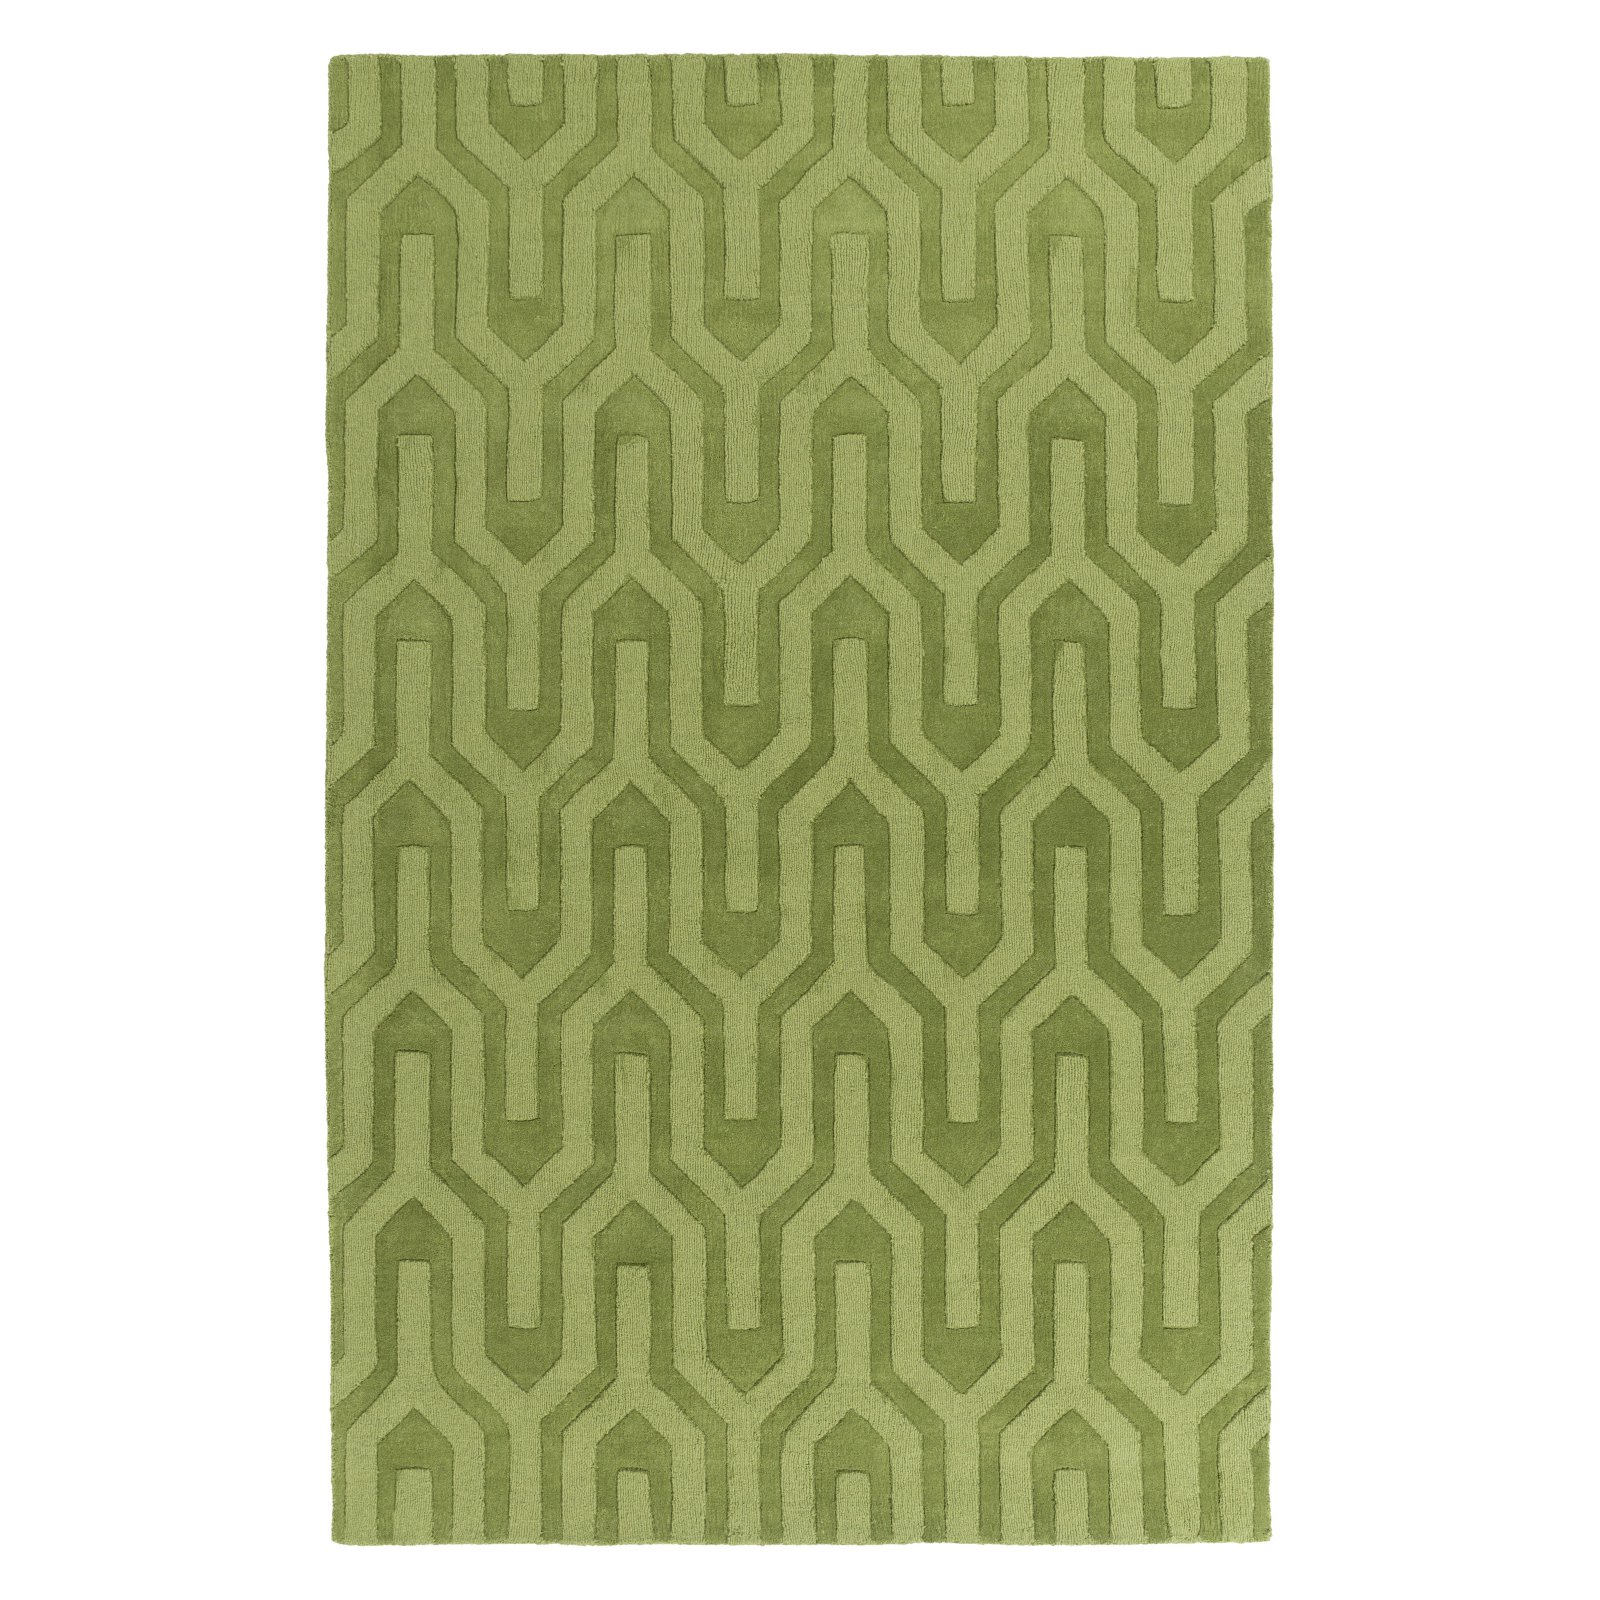 Surya Mystique M 5384 Area Rug Forest Products In 2019 Area